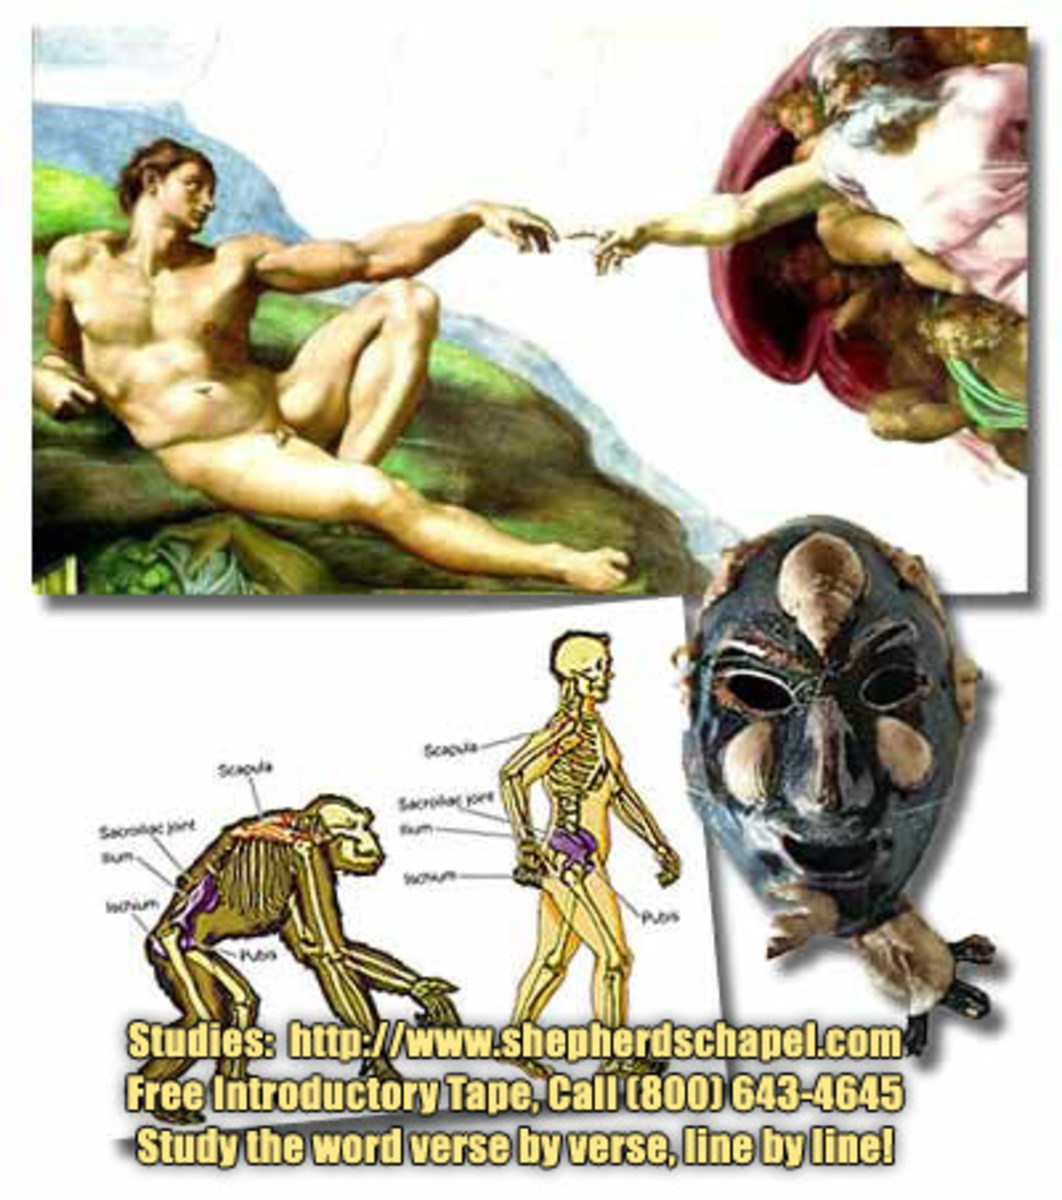 Did God start us from scratch or did he use a humanoid that was already living on earth as the first man on earth as Adam?